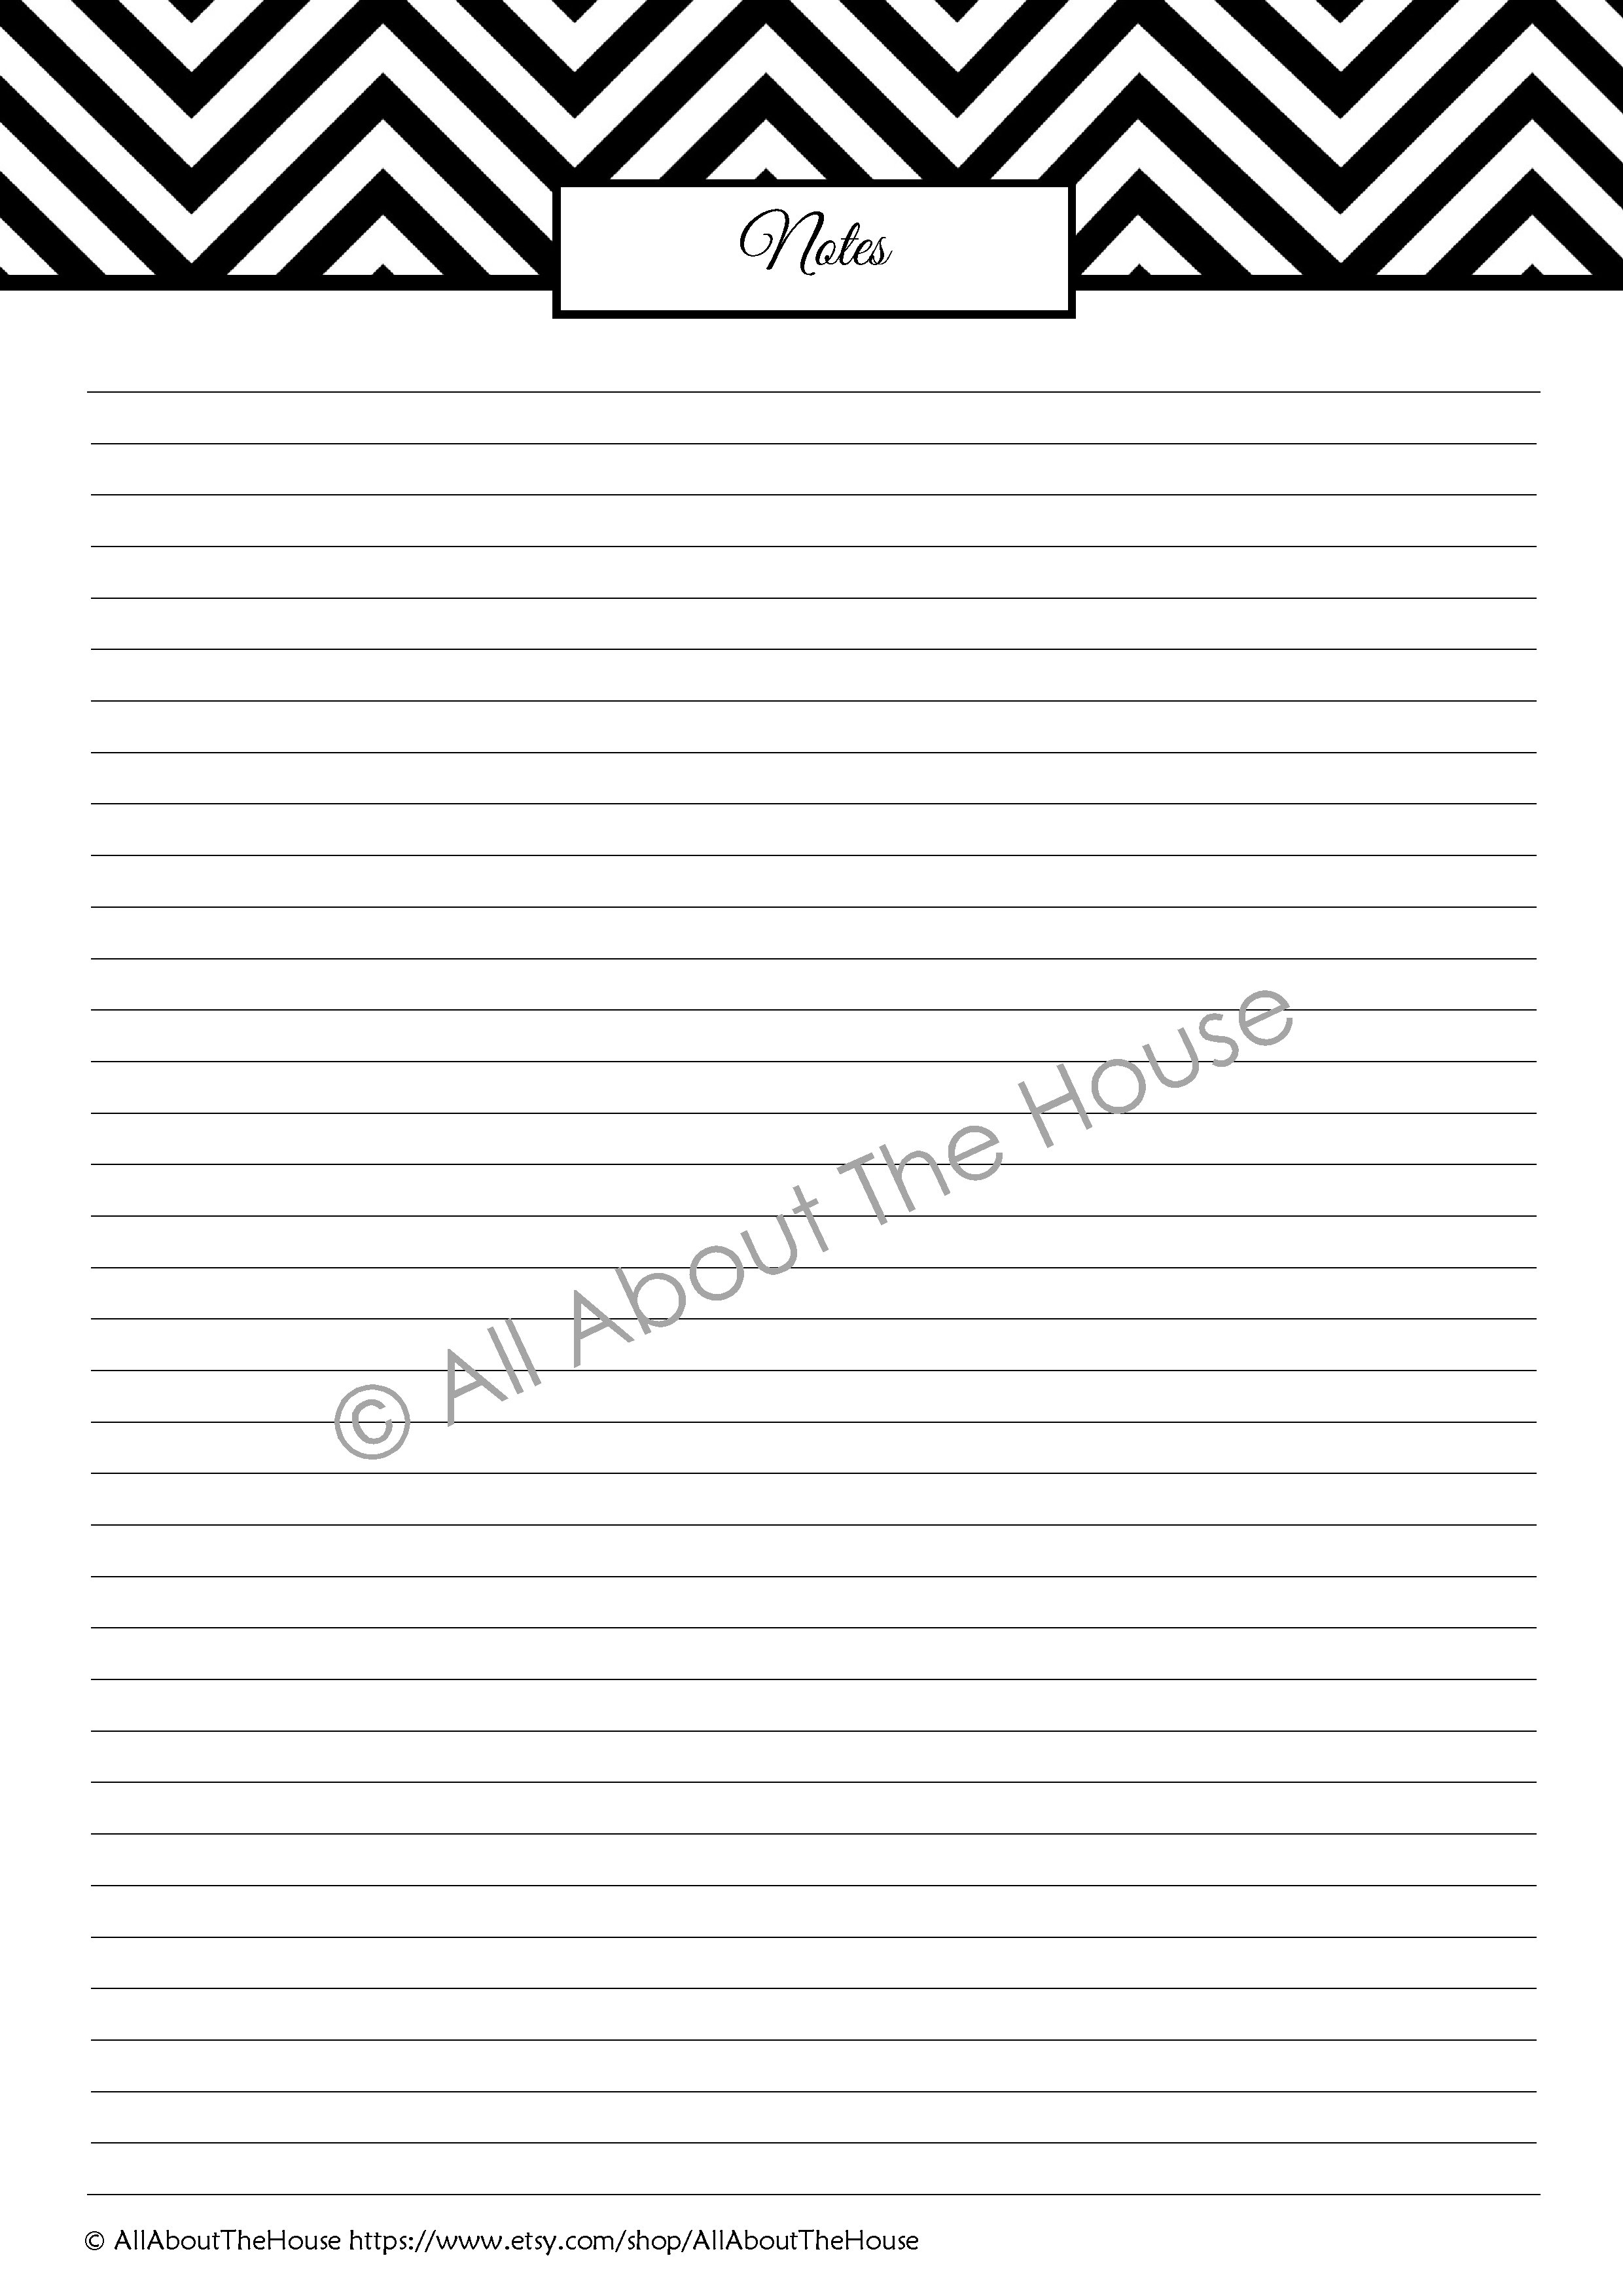 lined note sheet | AllAboutTheHouse Printables